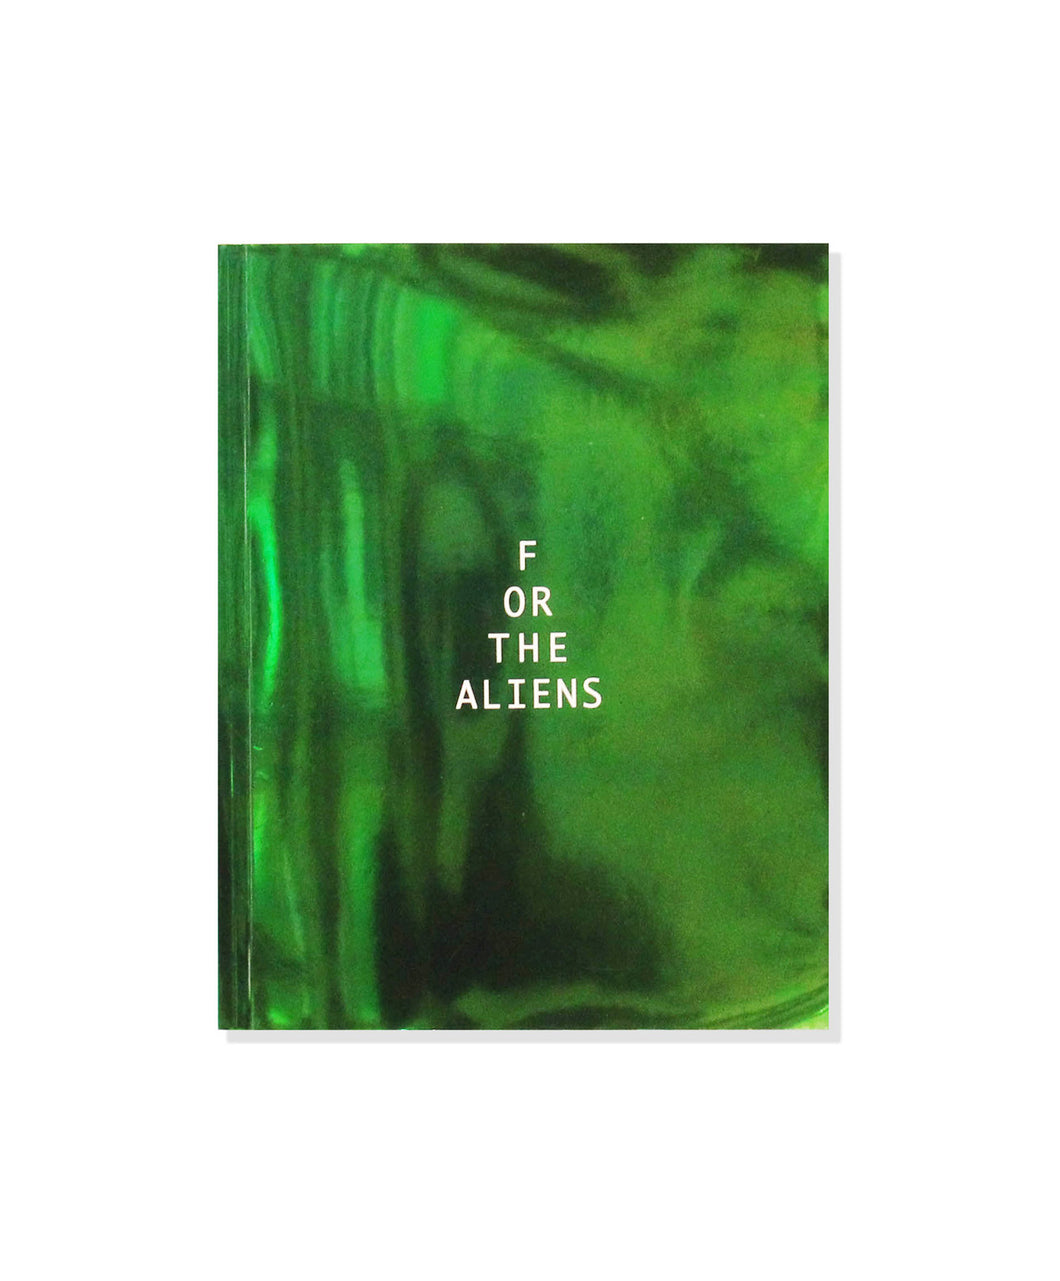 LEO BERNE - FOR THE ALIENS